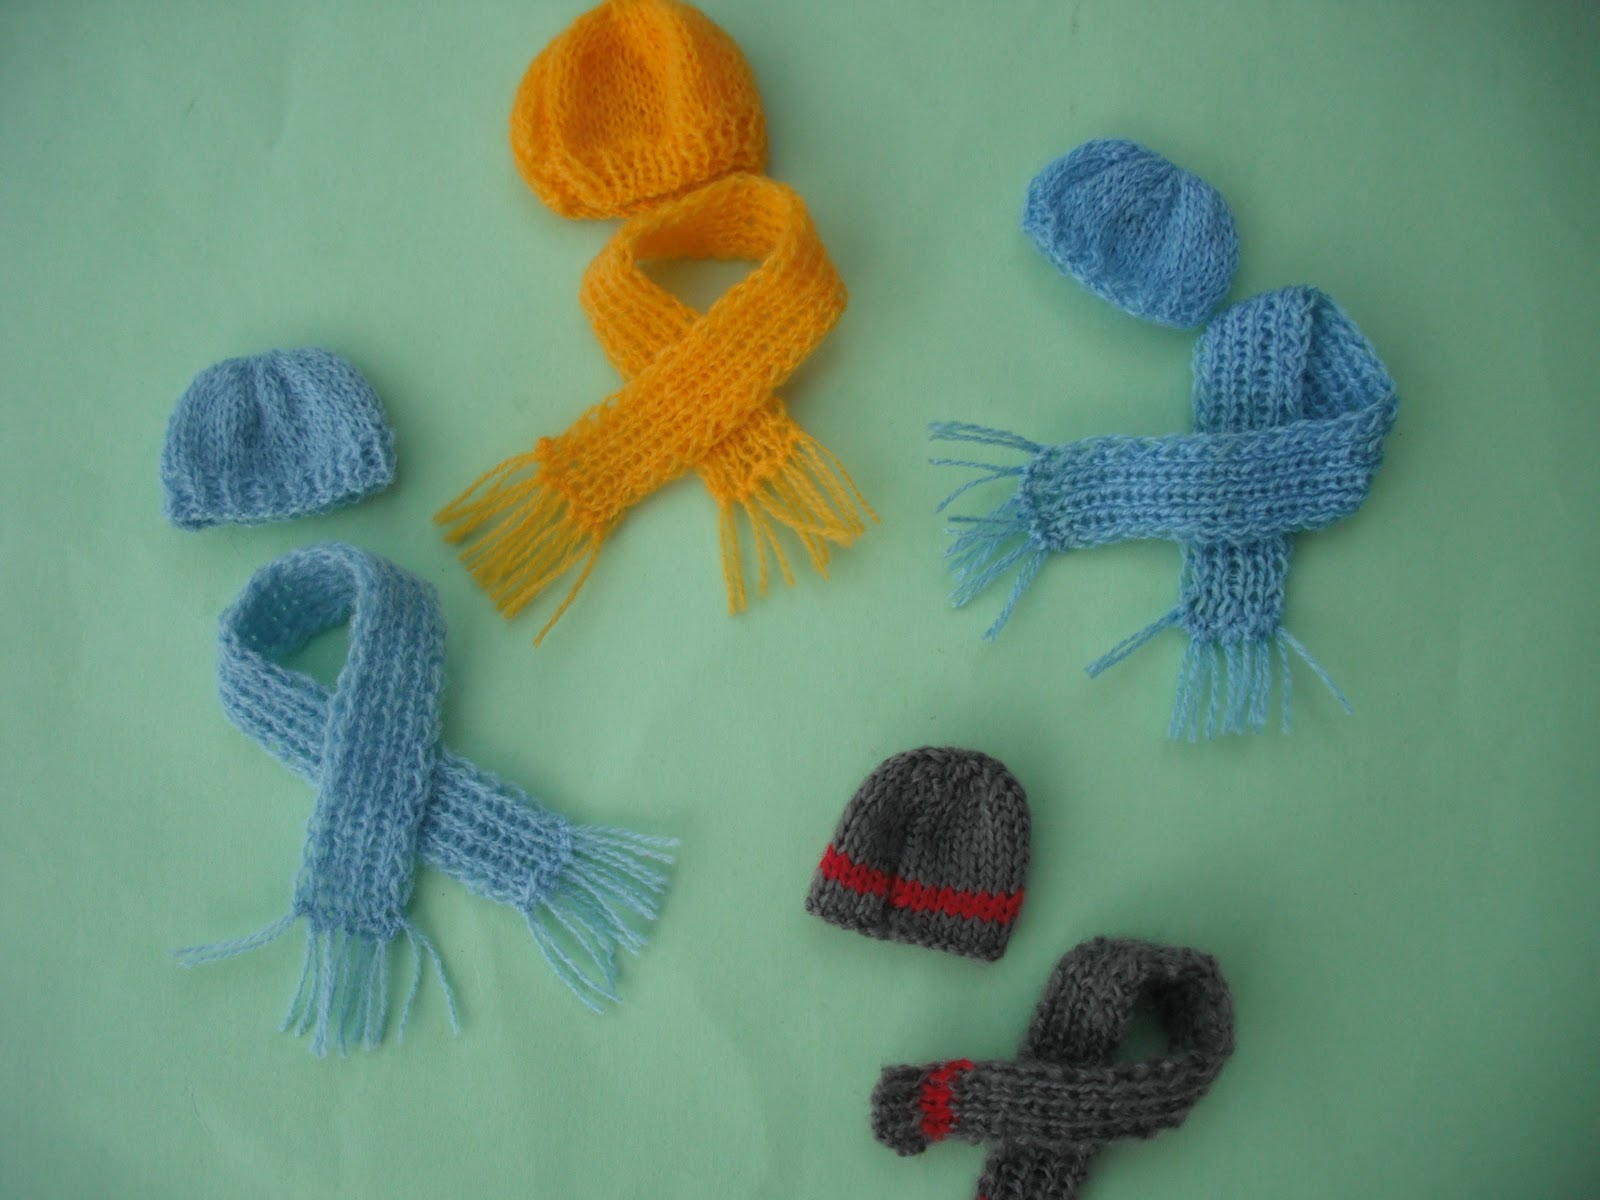 Knitting Patterns For Dolls Houses : bitstobuy: FREE GIFT dolls house 1:12 scale miniature knitted hat and scarf i...